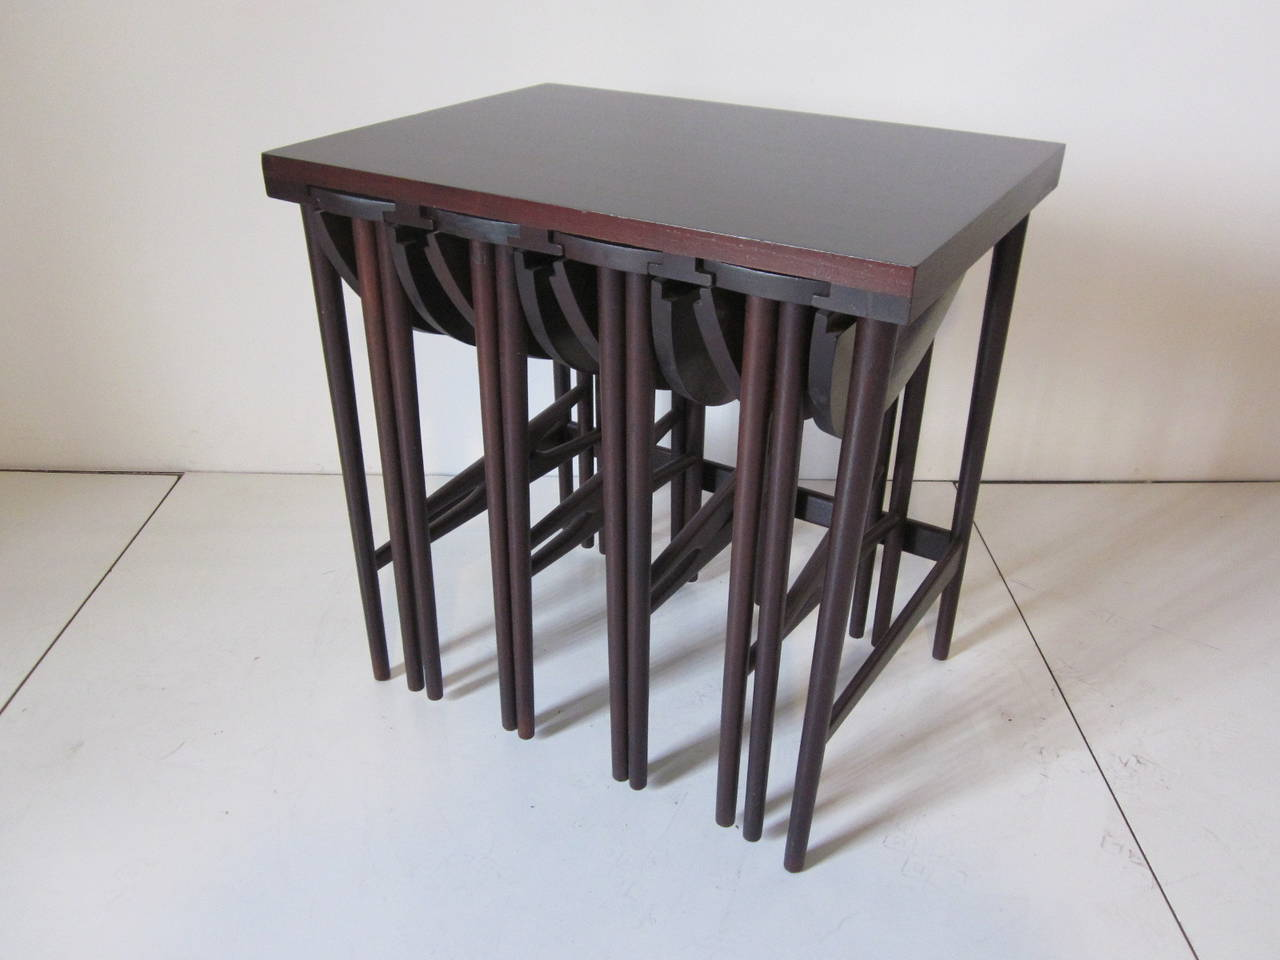 20th Century Bertha Schaefer Nesting Tables by Singer and Sons For Sale